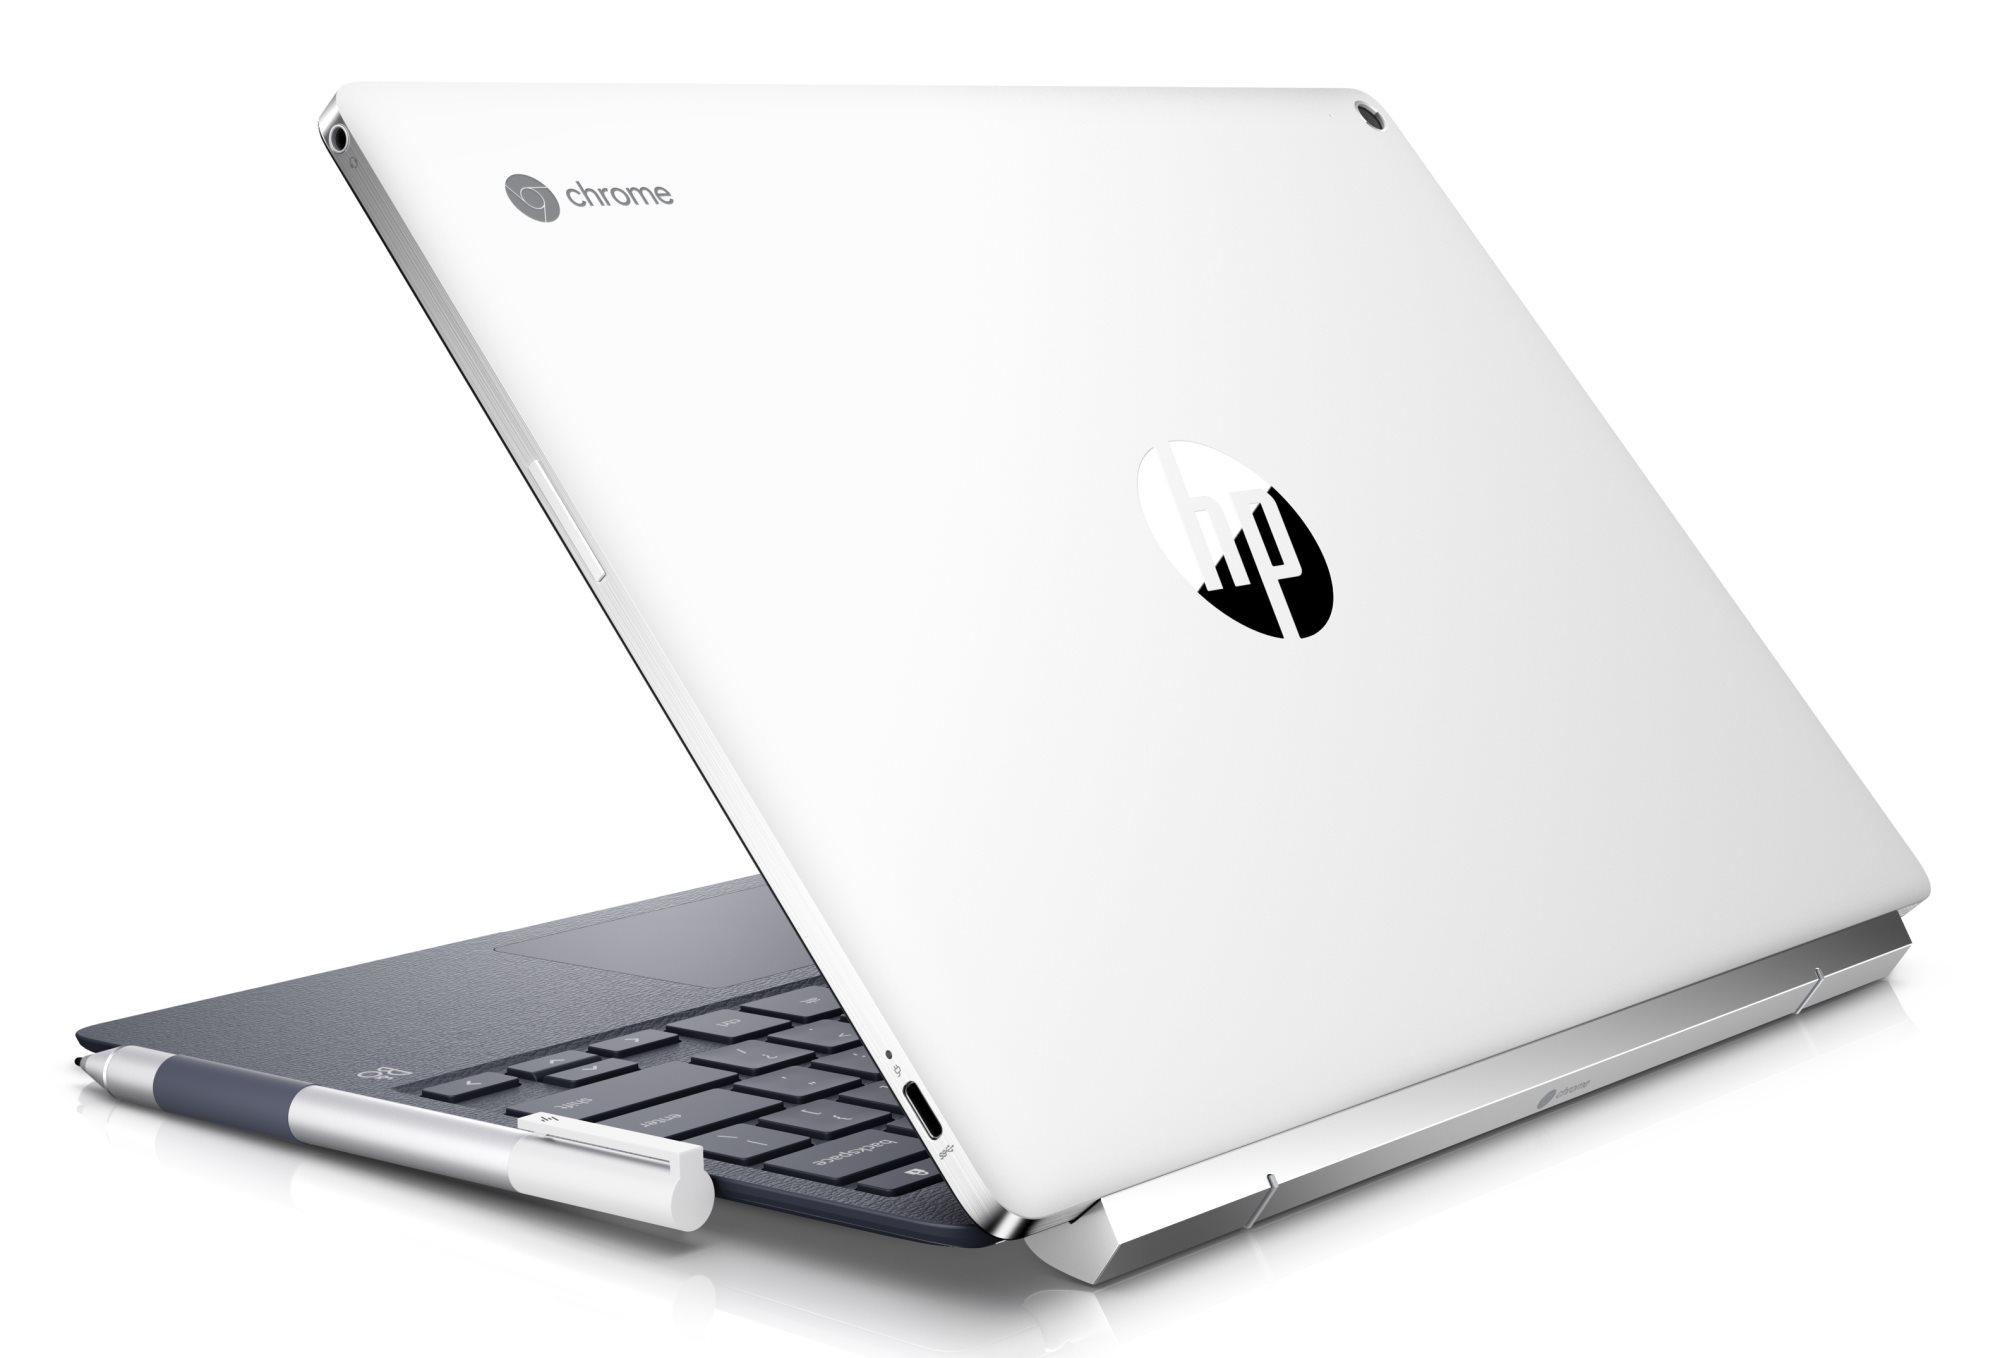 HP's Chromebook x2 is the 'world's first' detachable Chrome OS device